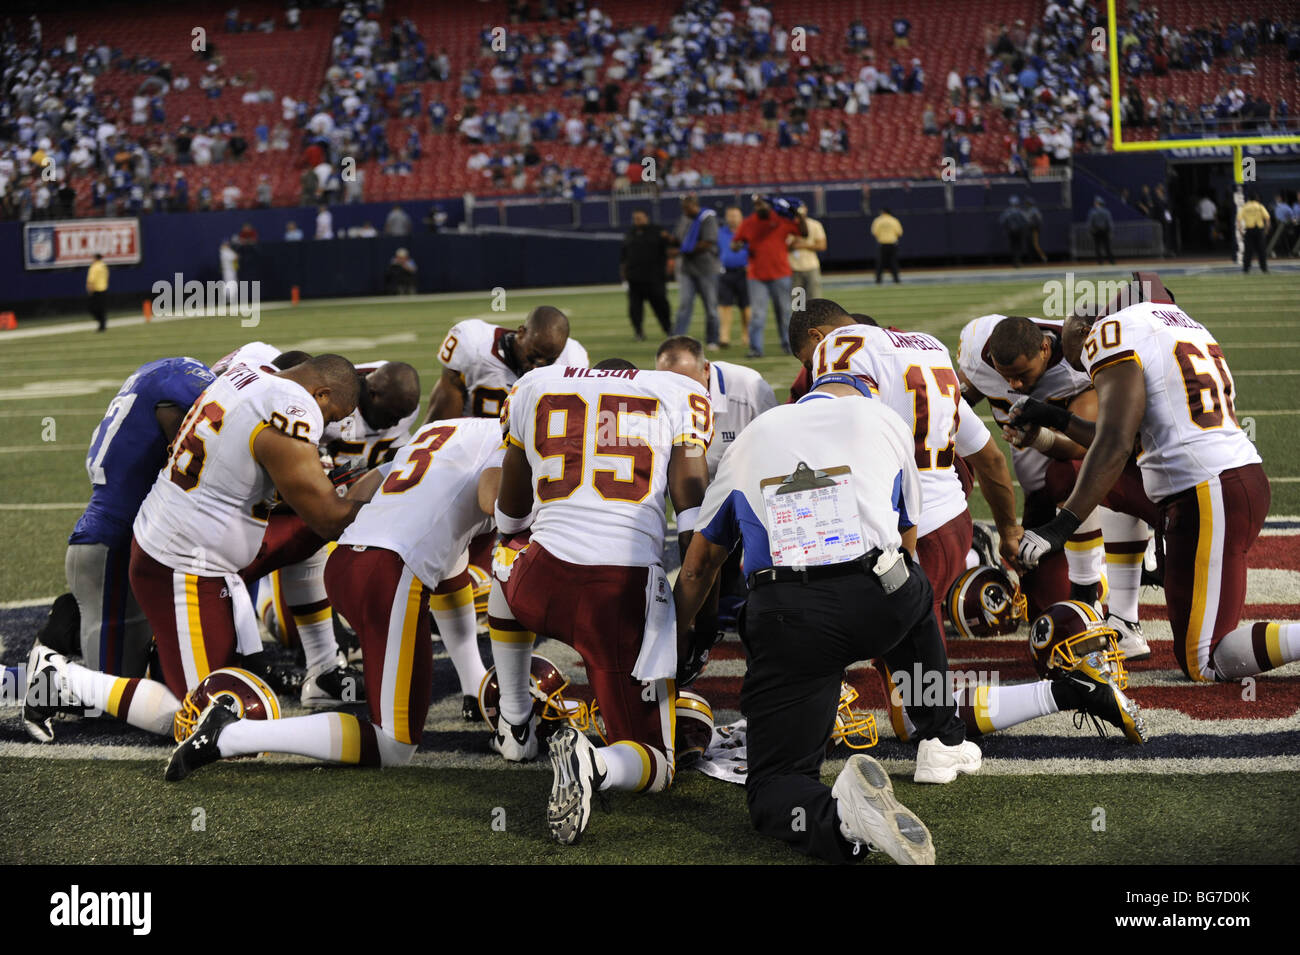 Professional football players pray on the field after a game - Stock Image